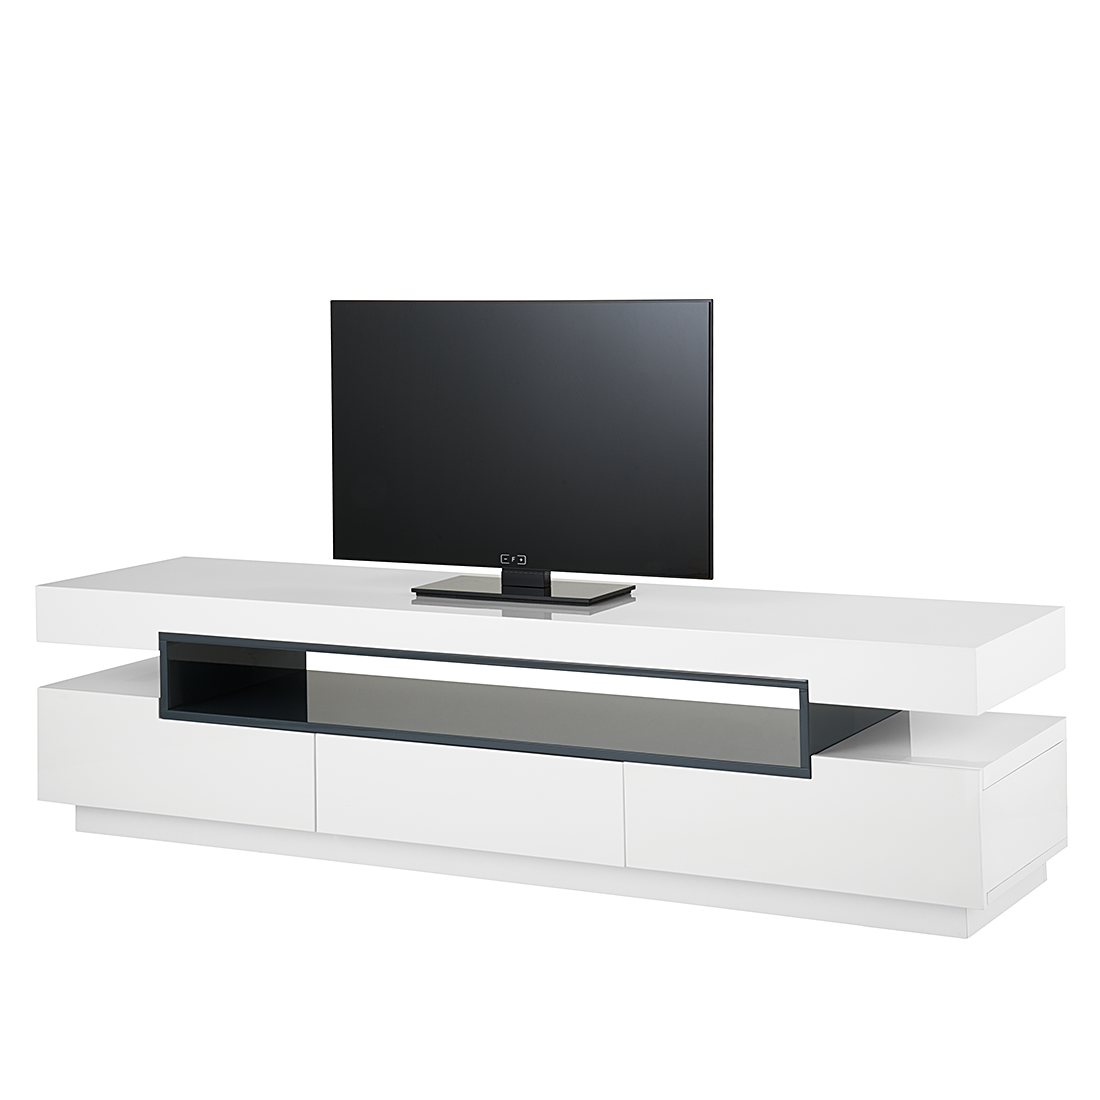 Affordable Awesome Cool Lowboard Mdf Weiss Grau Hochglanz Tv Hifi Rack  Tisch Bank With Tv Mbel Ek With Tv Lowboard Grau Hochglanz With Tv Mbel Ek